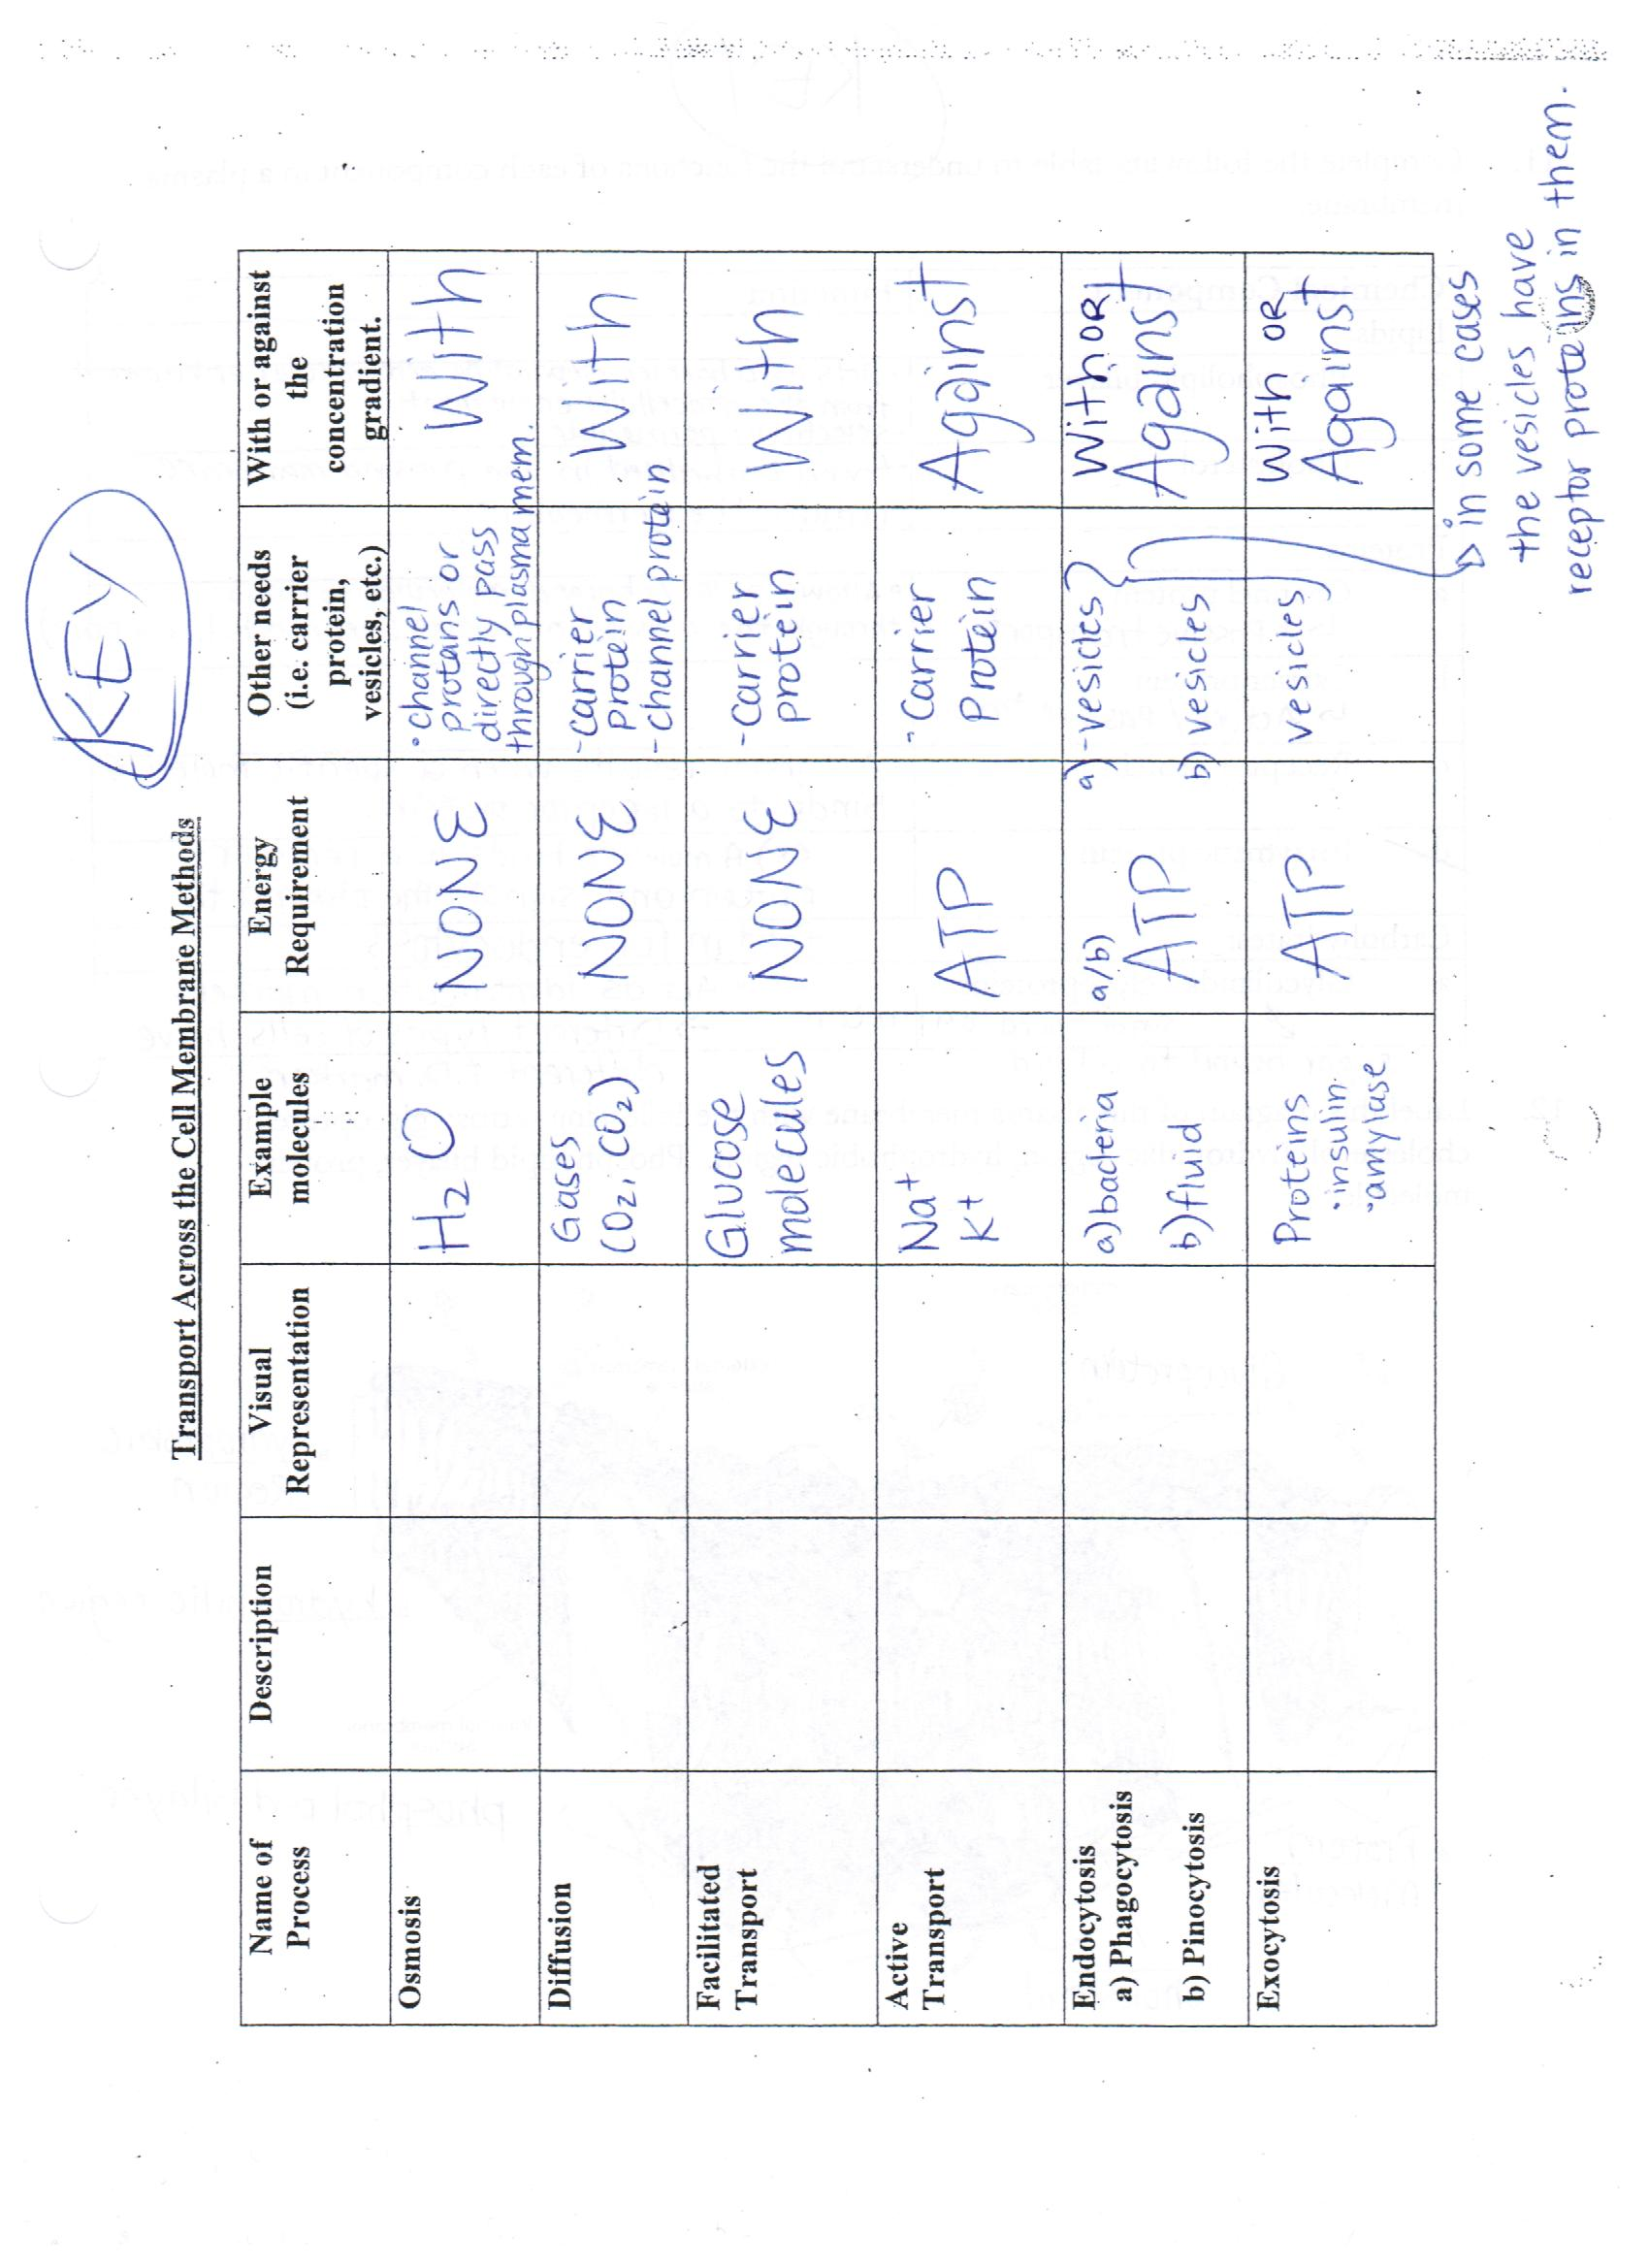 Worksheet Cell City Worksheet Answers Worksheet Fun